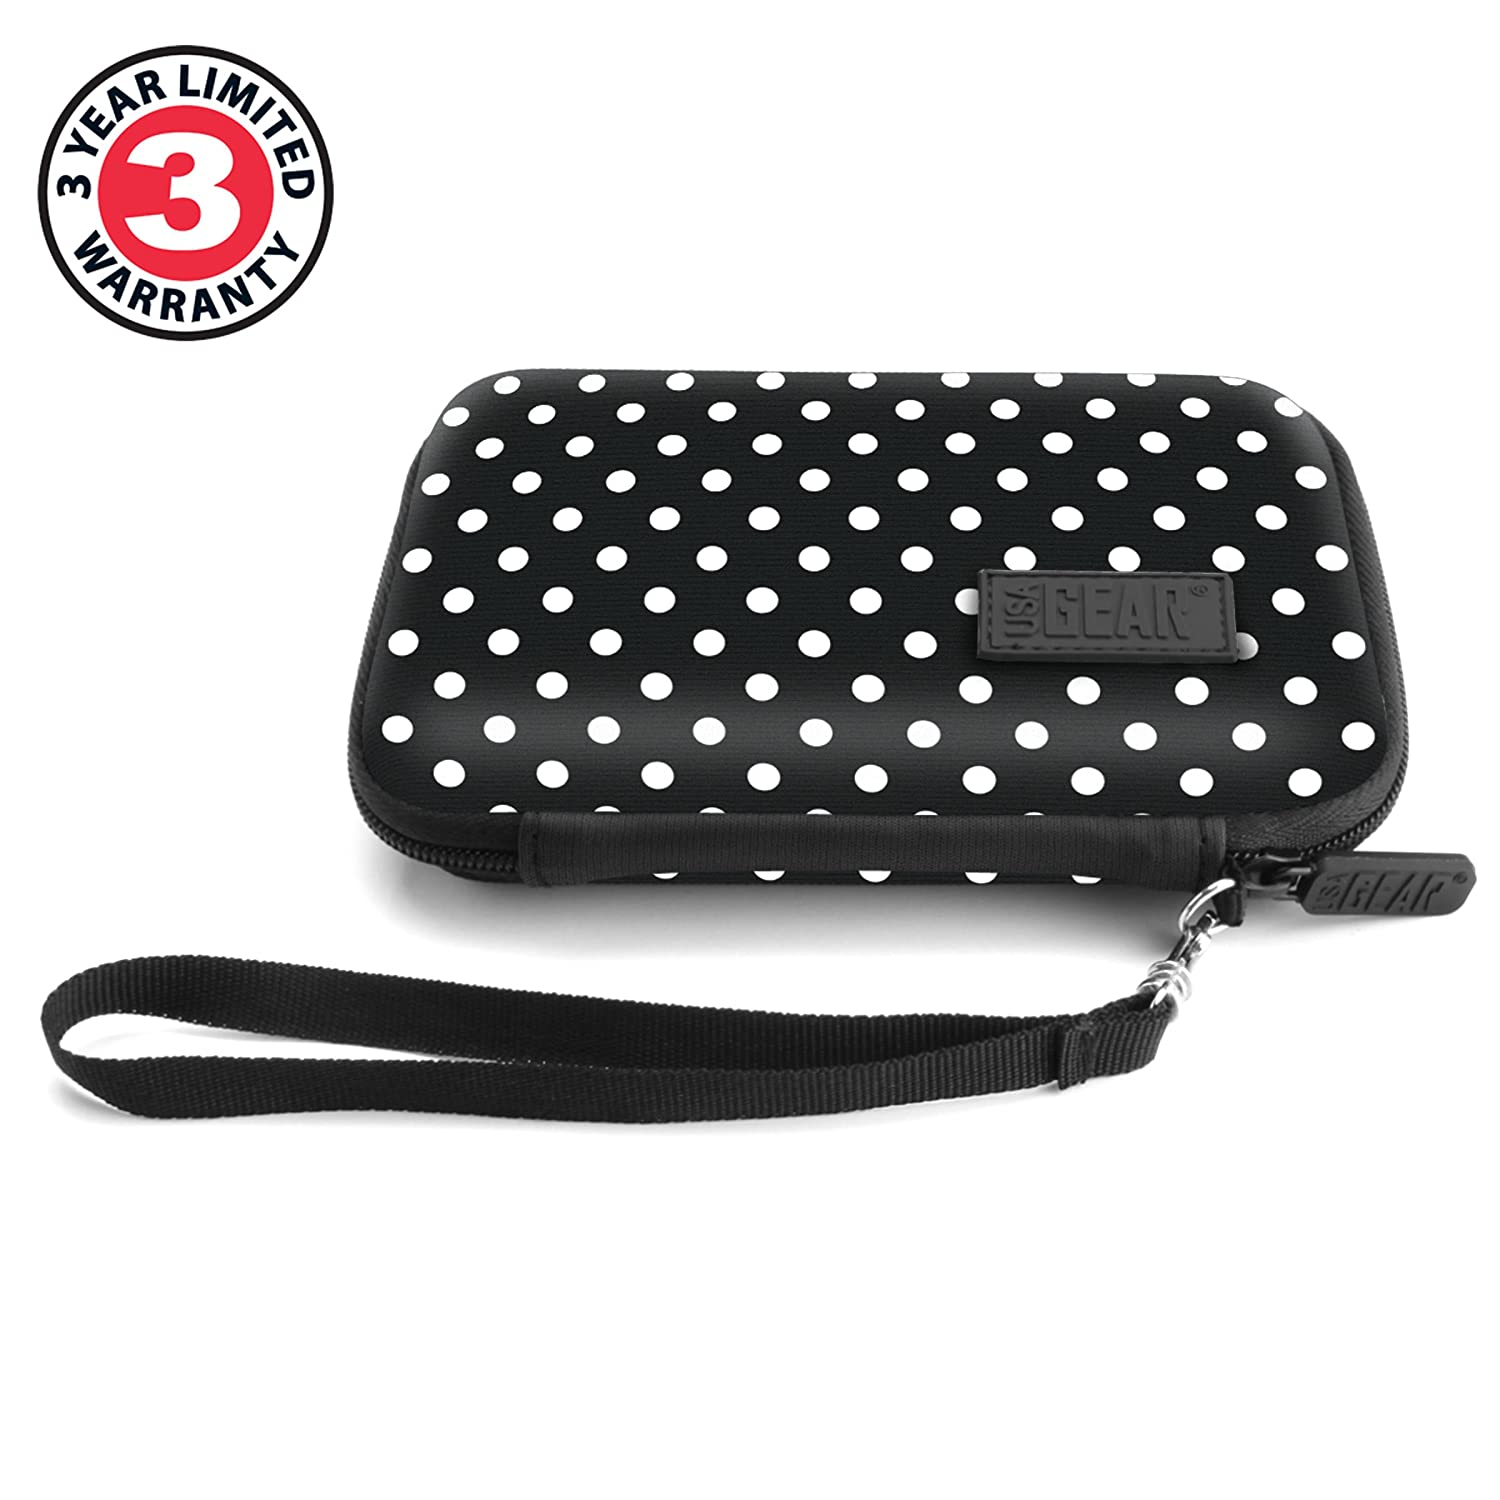 Polka Dot PerfectPrime IR0005 USA Gear Hard Protective Thermal Imager Carrying Case PRO Fastframe XR and More Thermal Imagers C3 XR Seek Reveal Compatible with FLIR C2